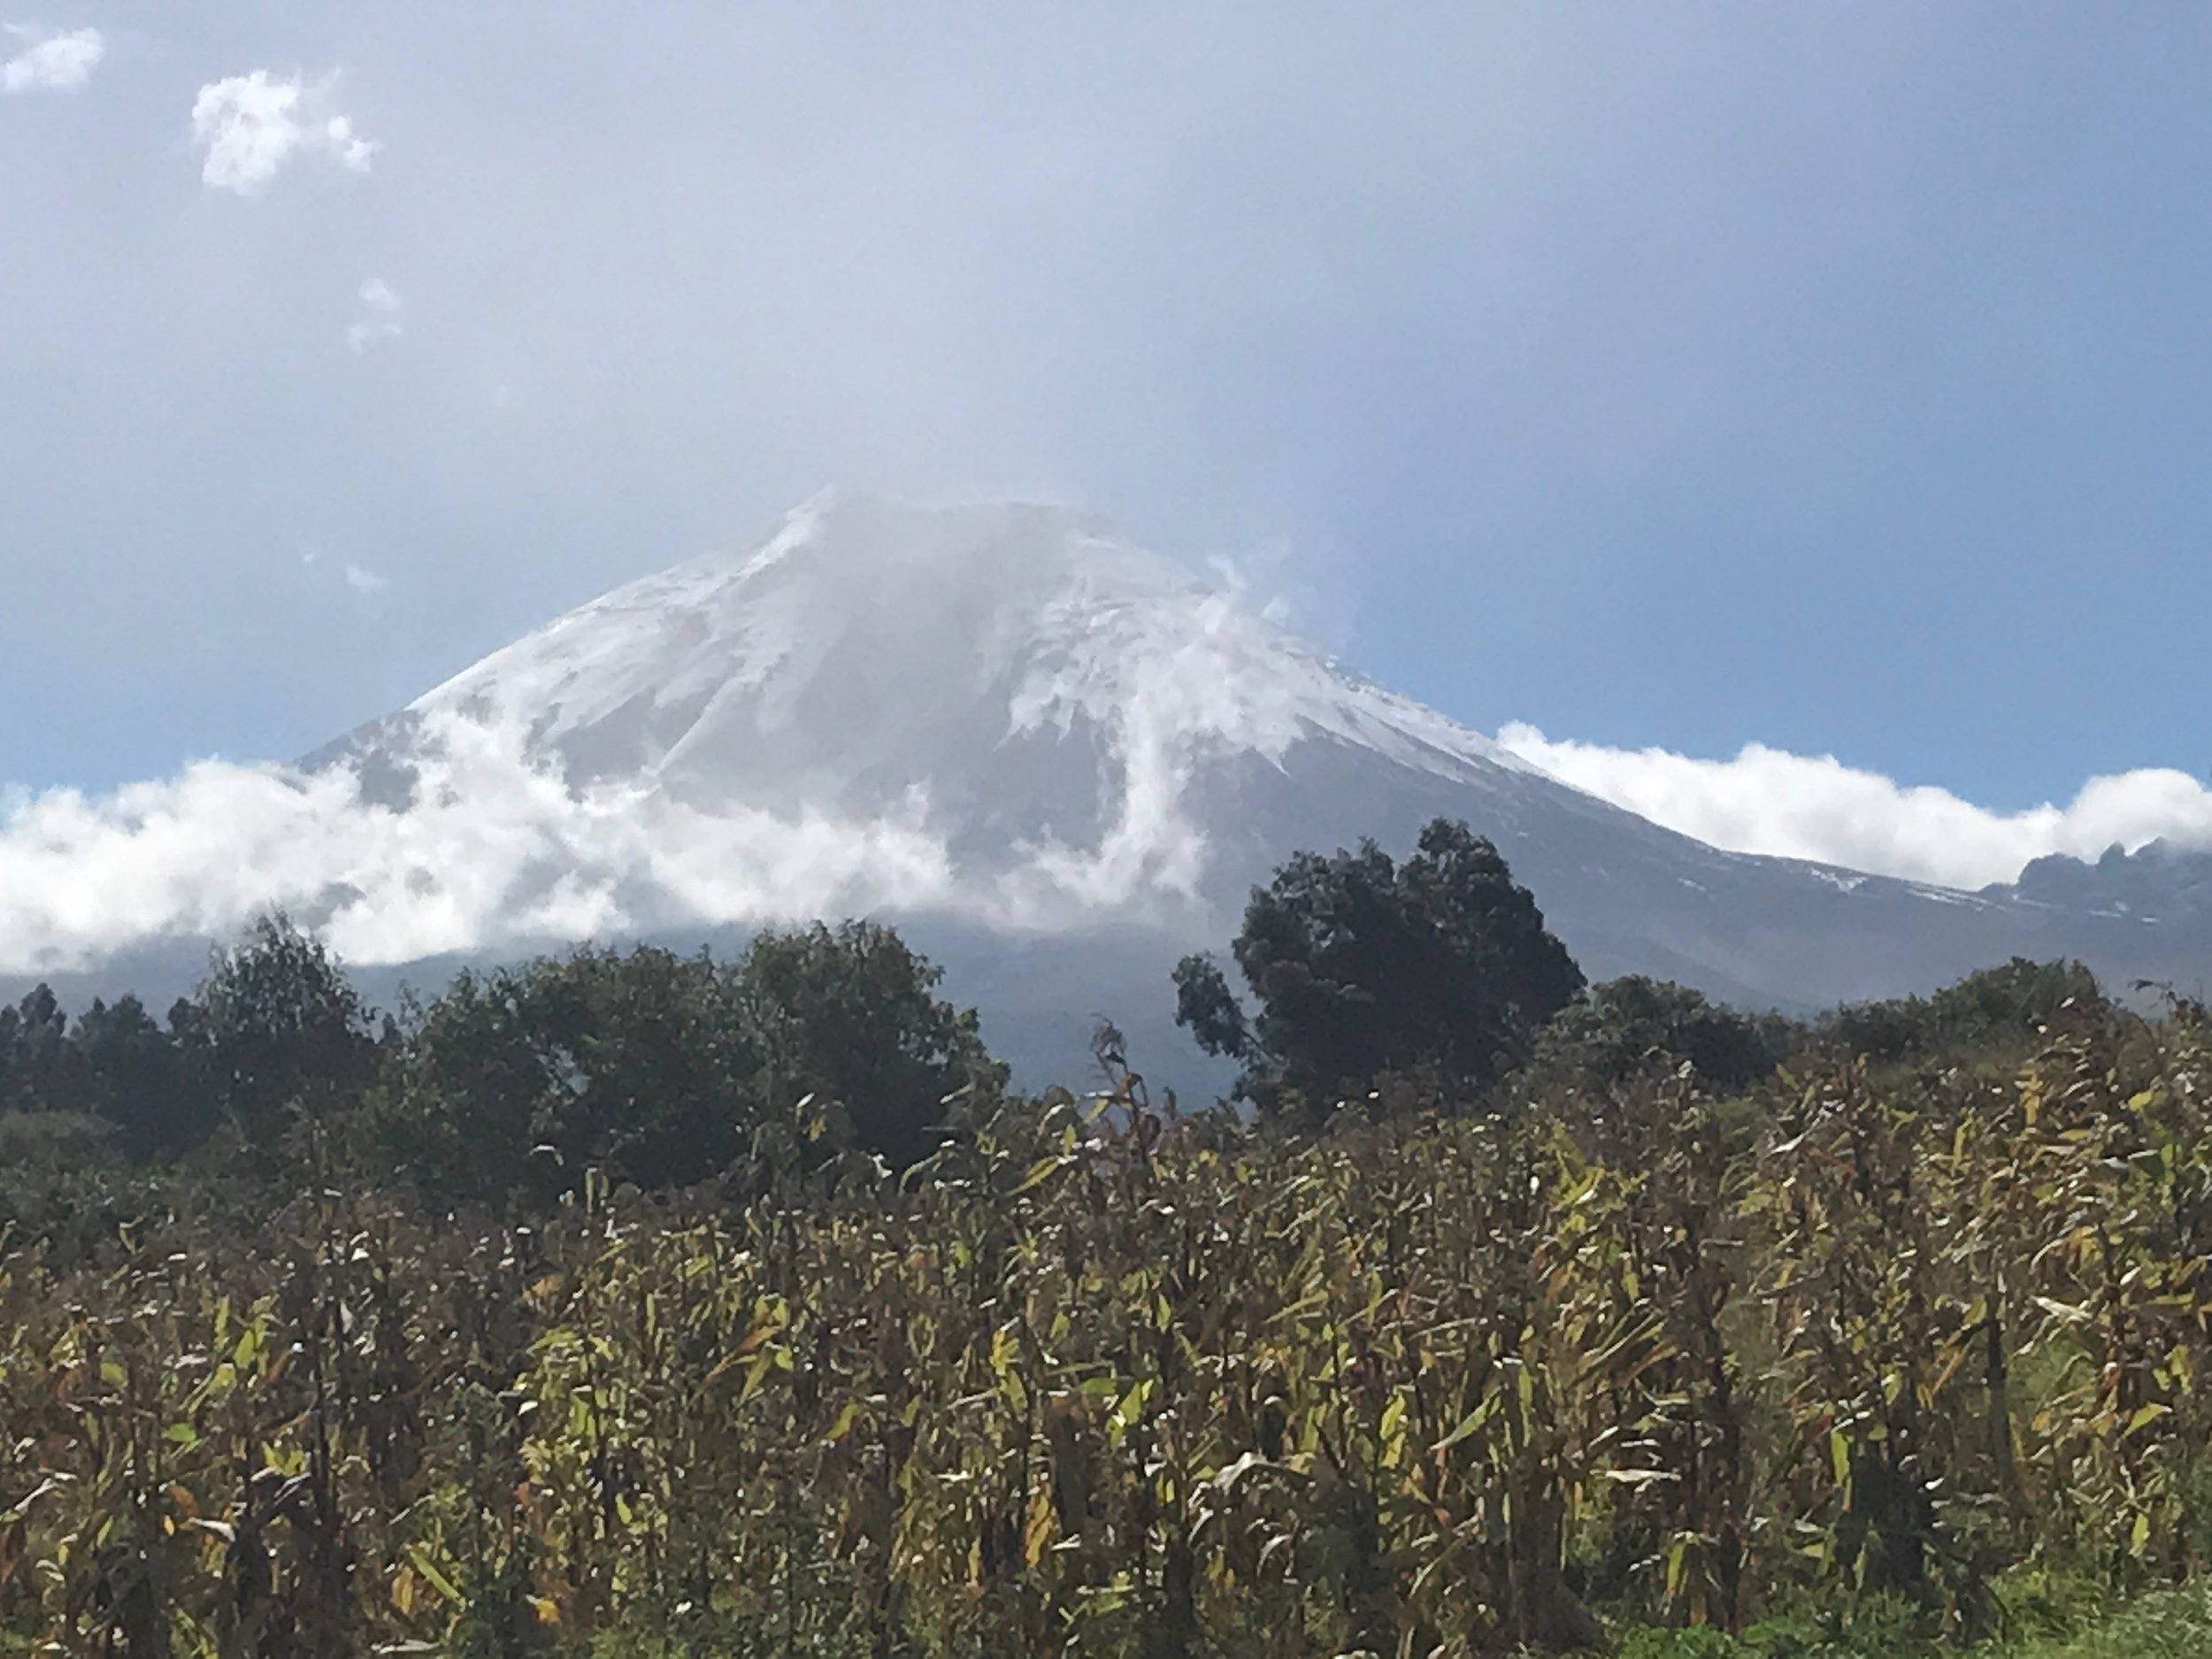 Cotapaxi: usually shrouded in clouds